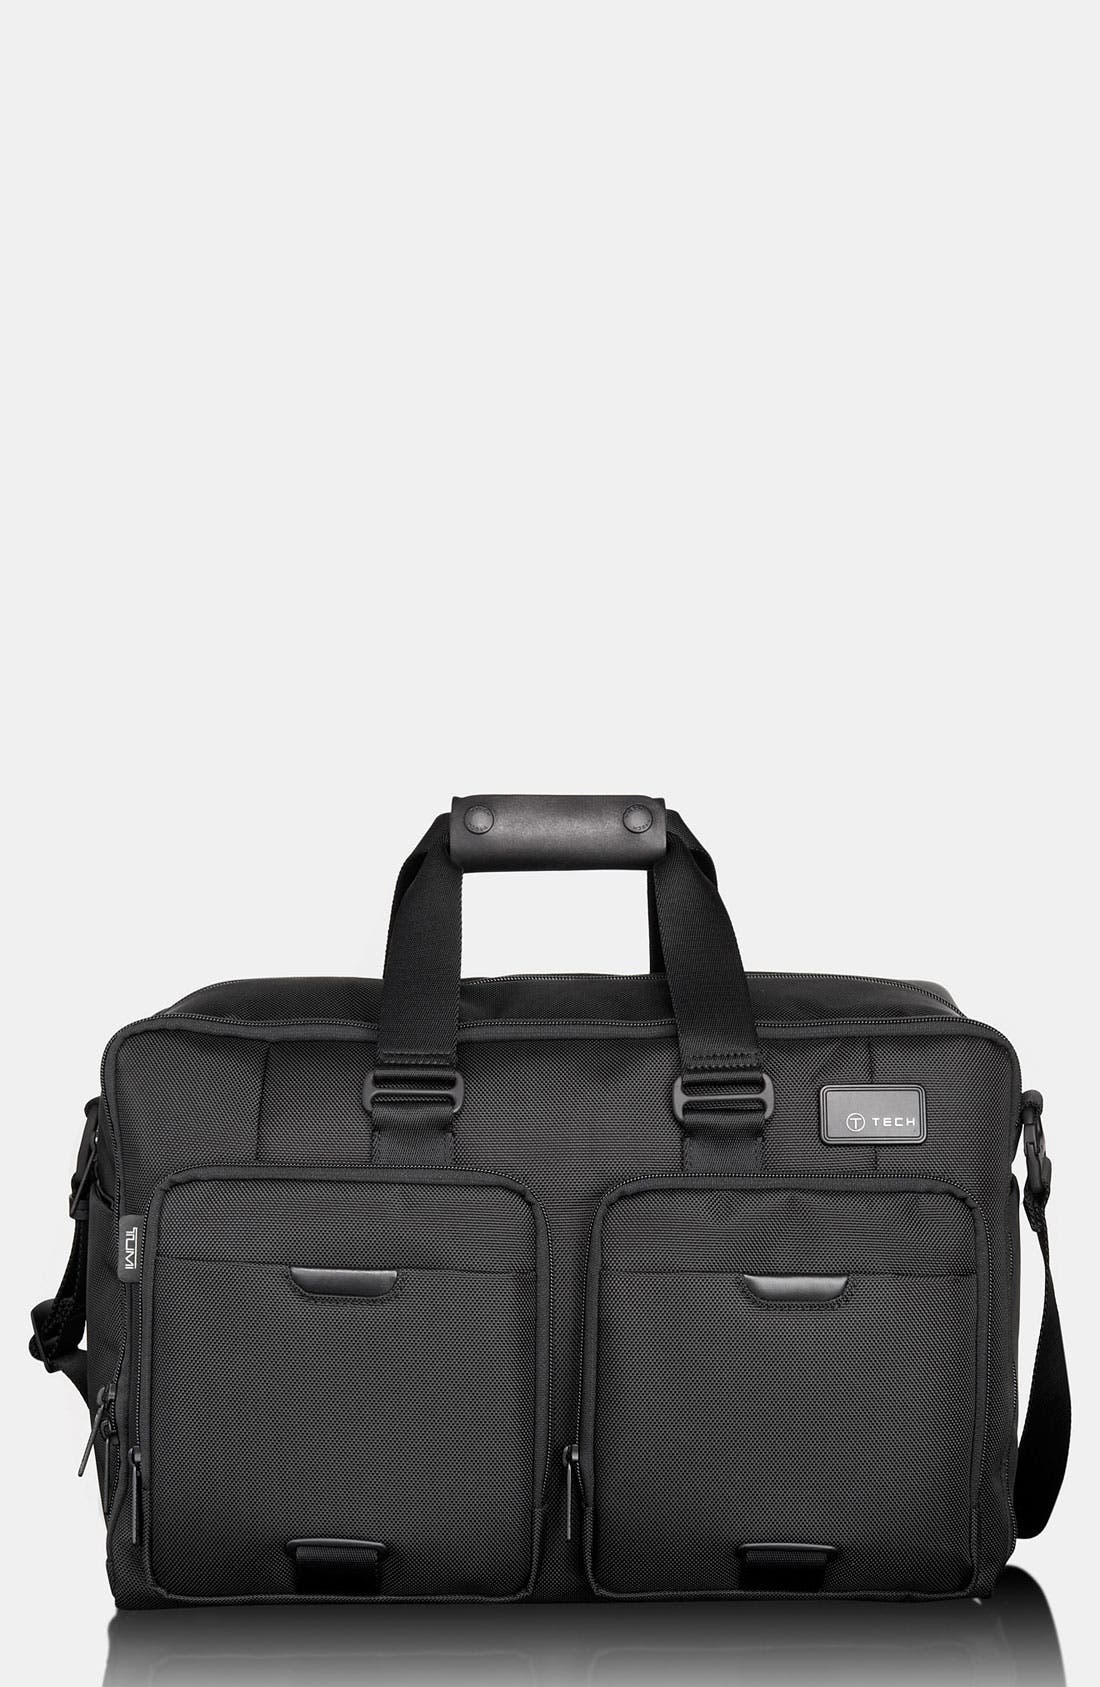 Main Image - Tumi 'T-Tech Network' Soft Carry-On